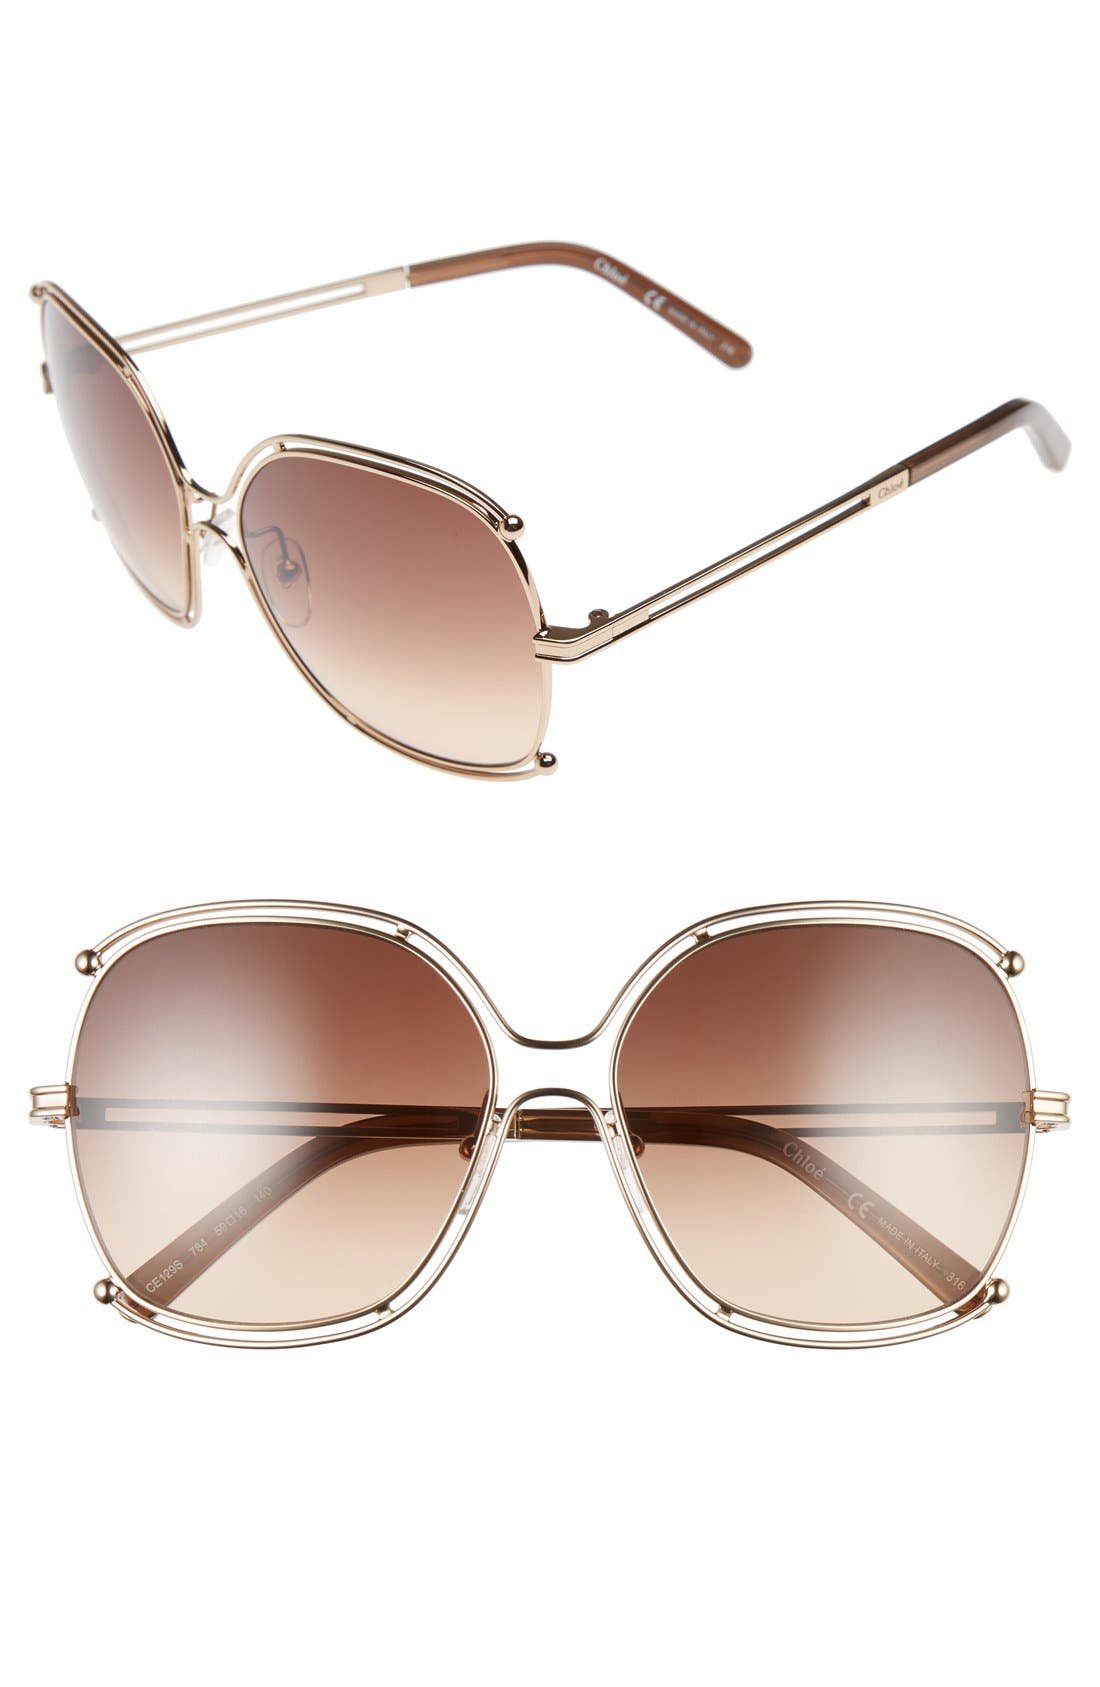 Isidora 59mm Square Sunglasses,                             Main thumbnail 4, color,